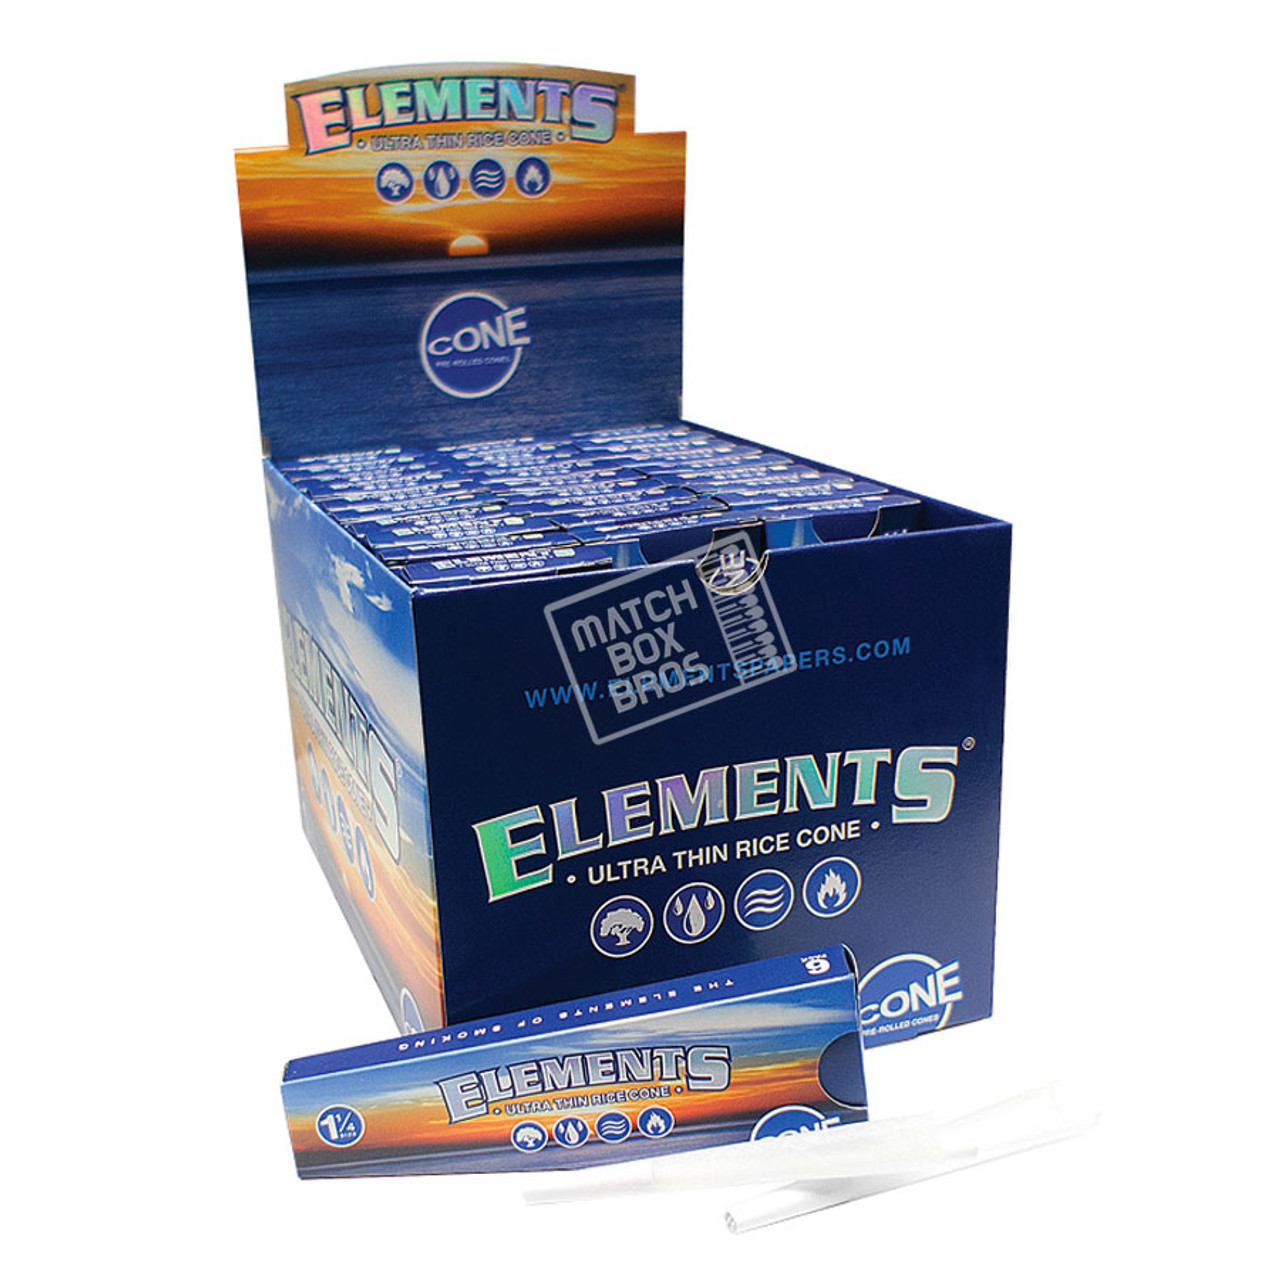 Elements Pre Rolled Cones 1 1/4 6/Pack Full Box